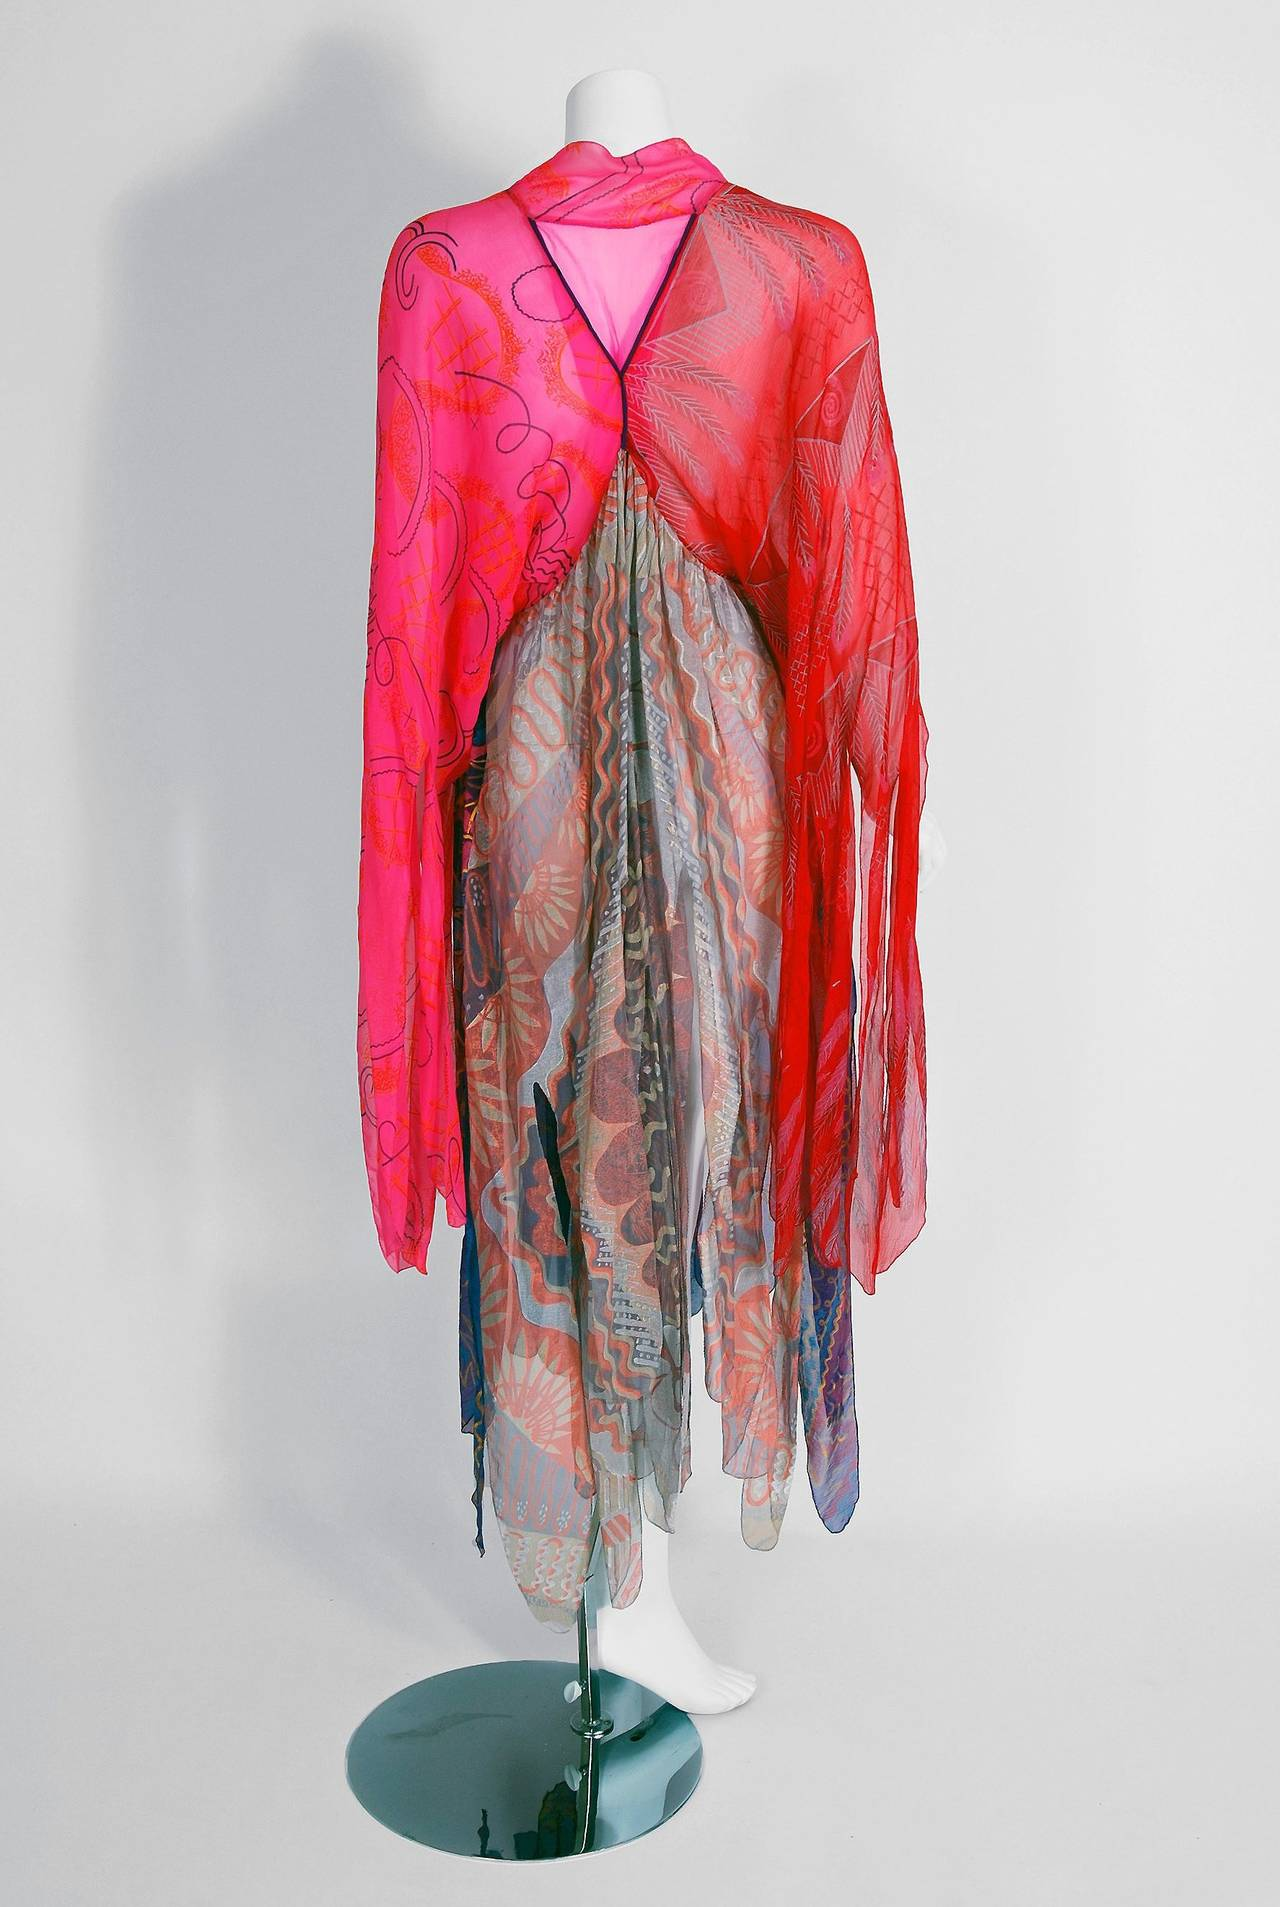 1972 Zandra Rhodes Hand-Painted Indian Feathers & Lillies Silk Caftan Dress For Sale 1